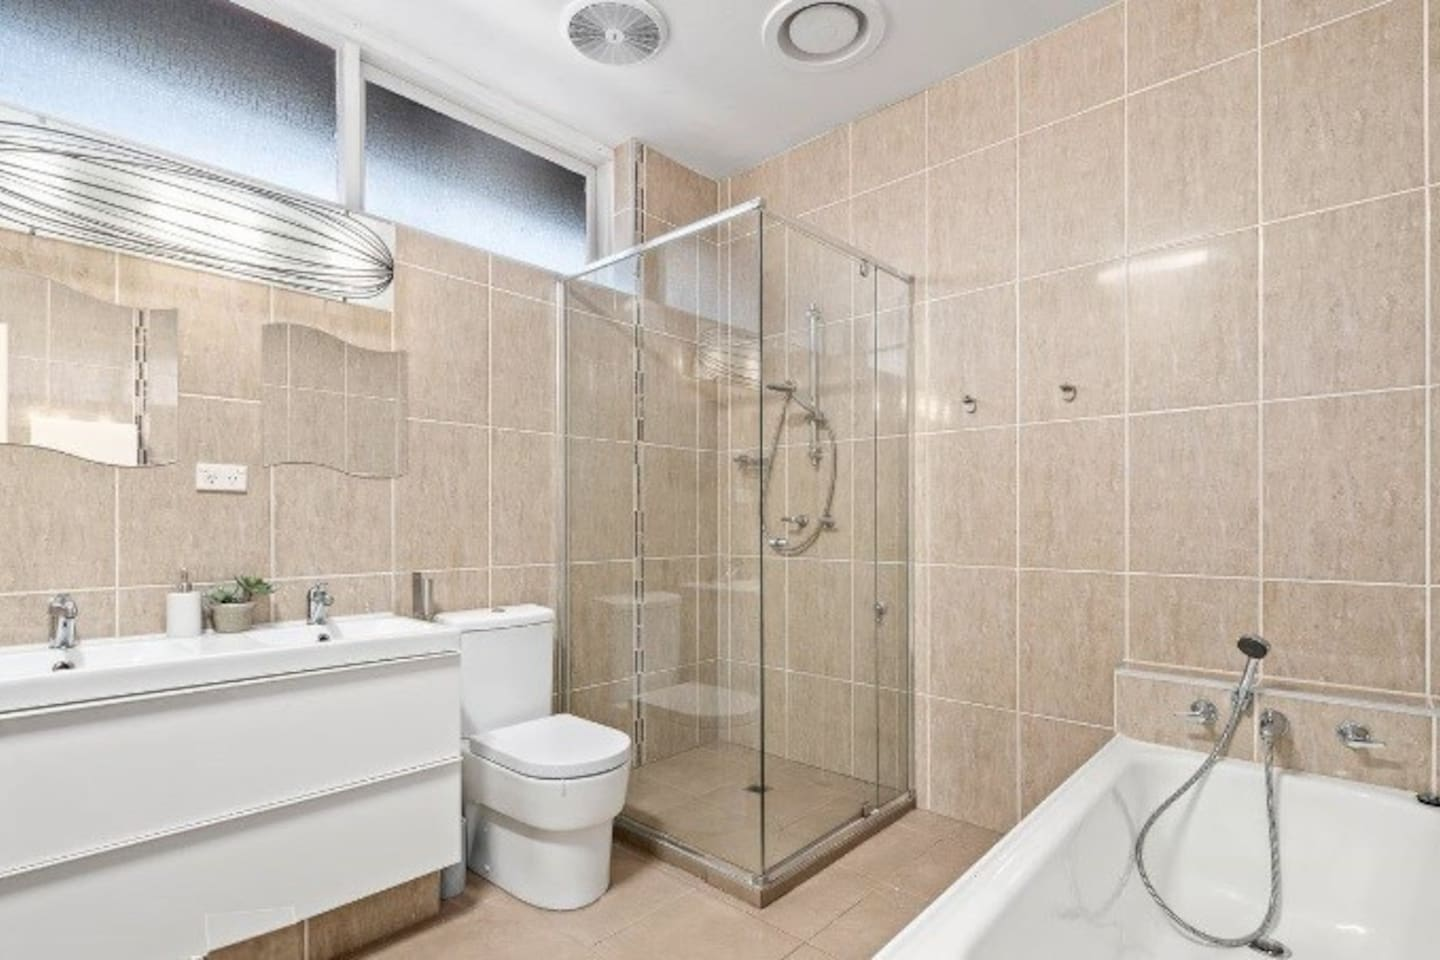 Ensuite Bathroom for this shared room